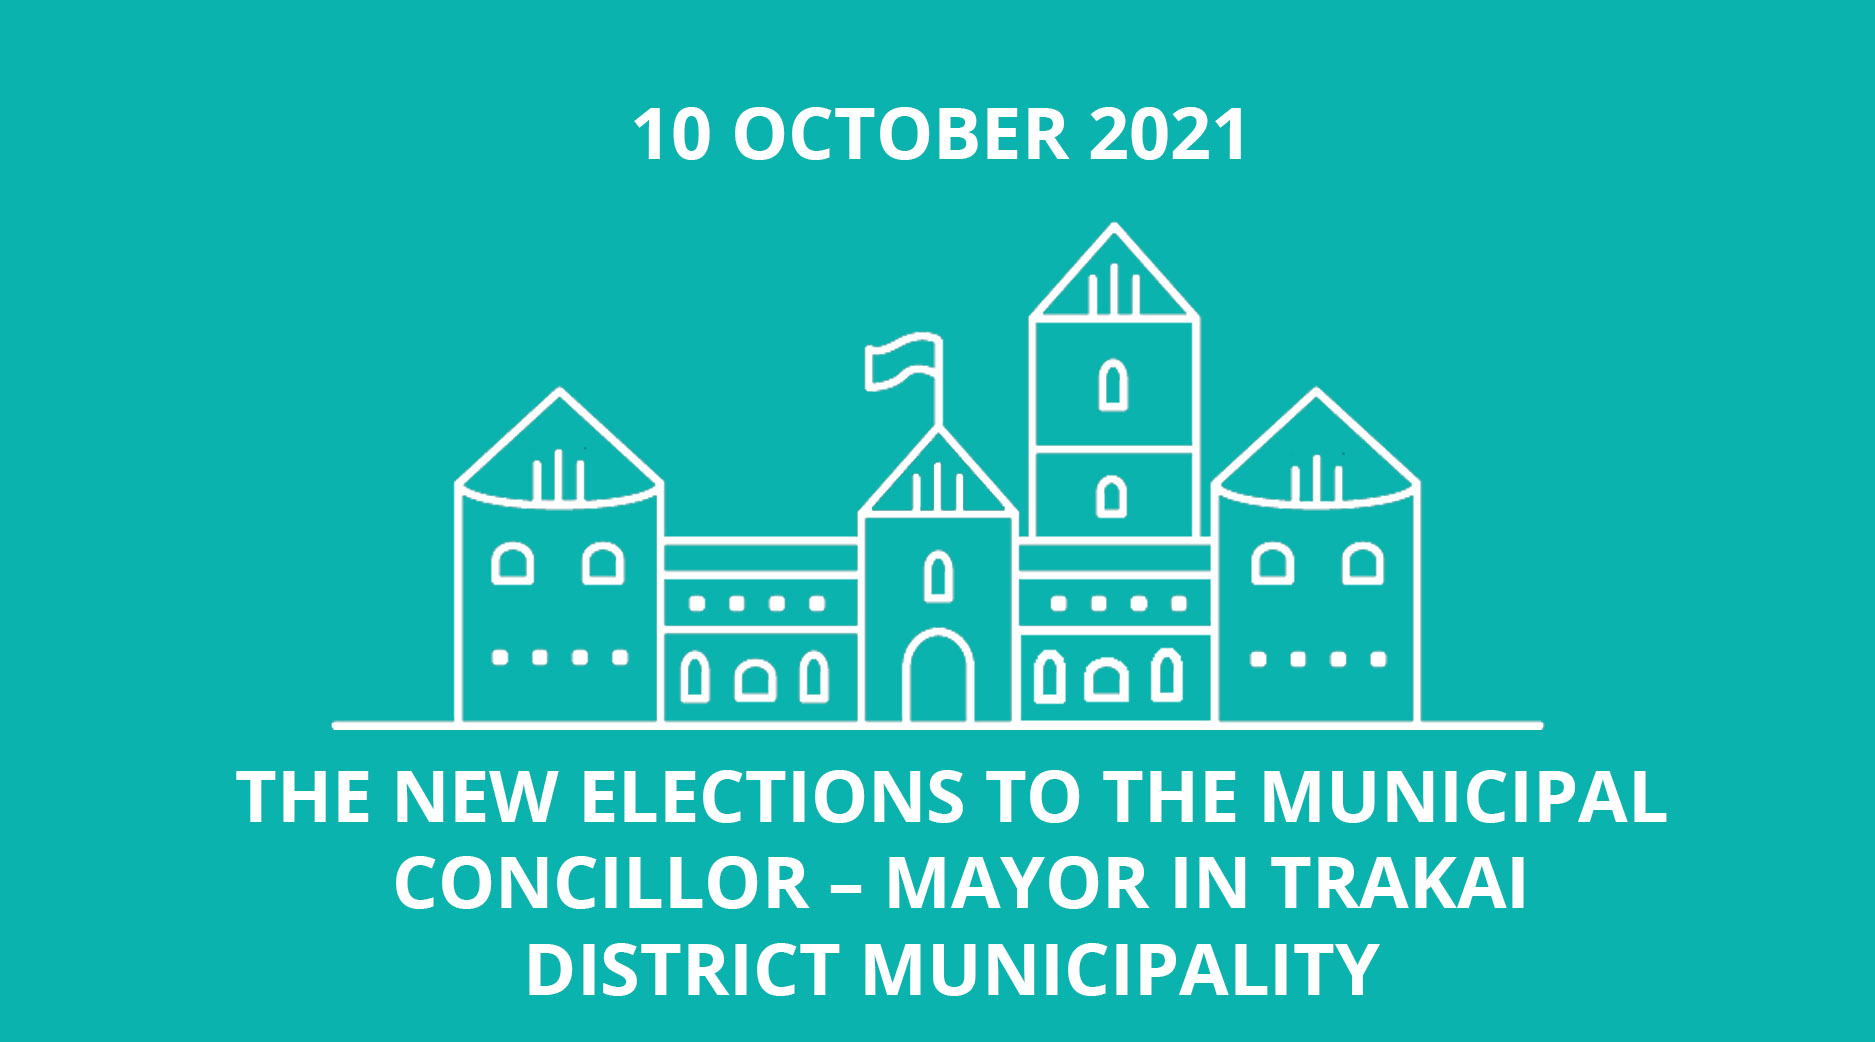 The new Elections to the municipal concillor - mayor